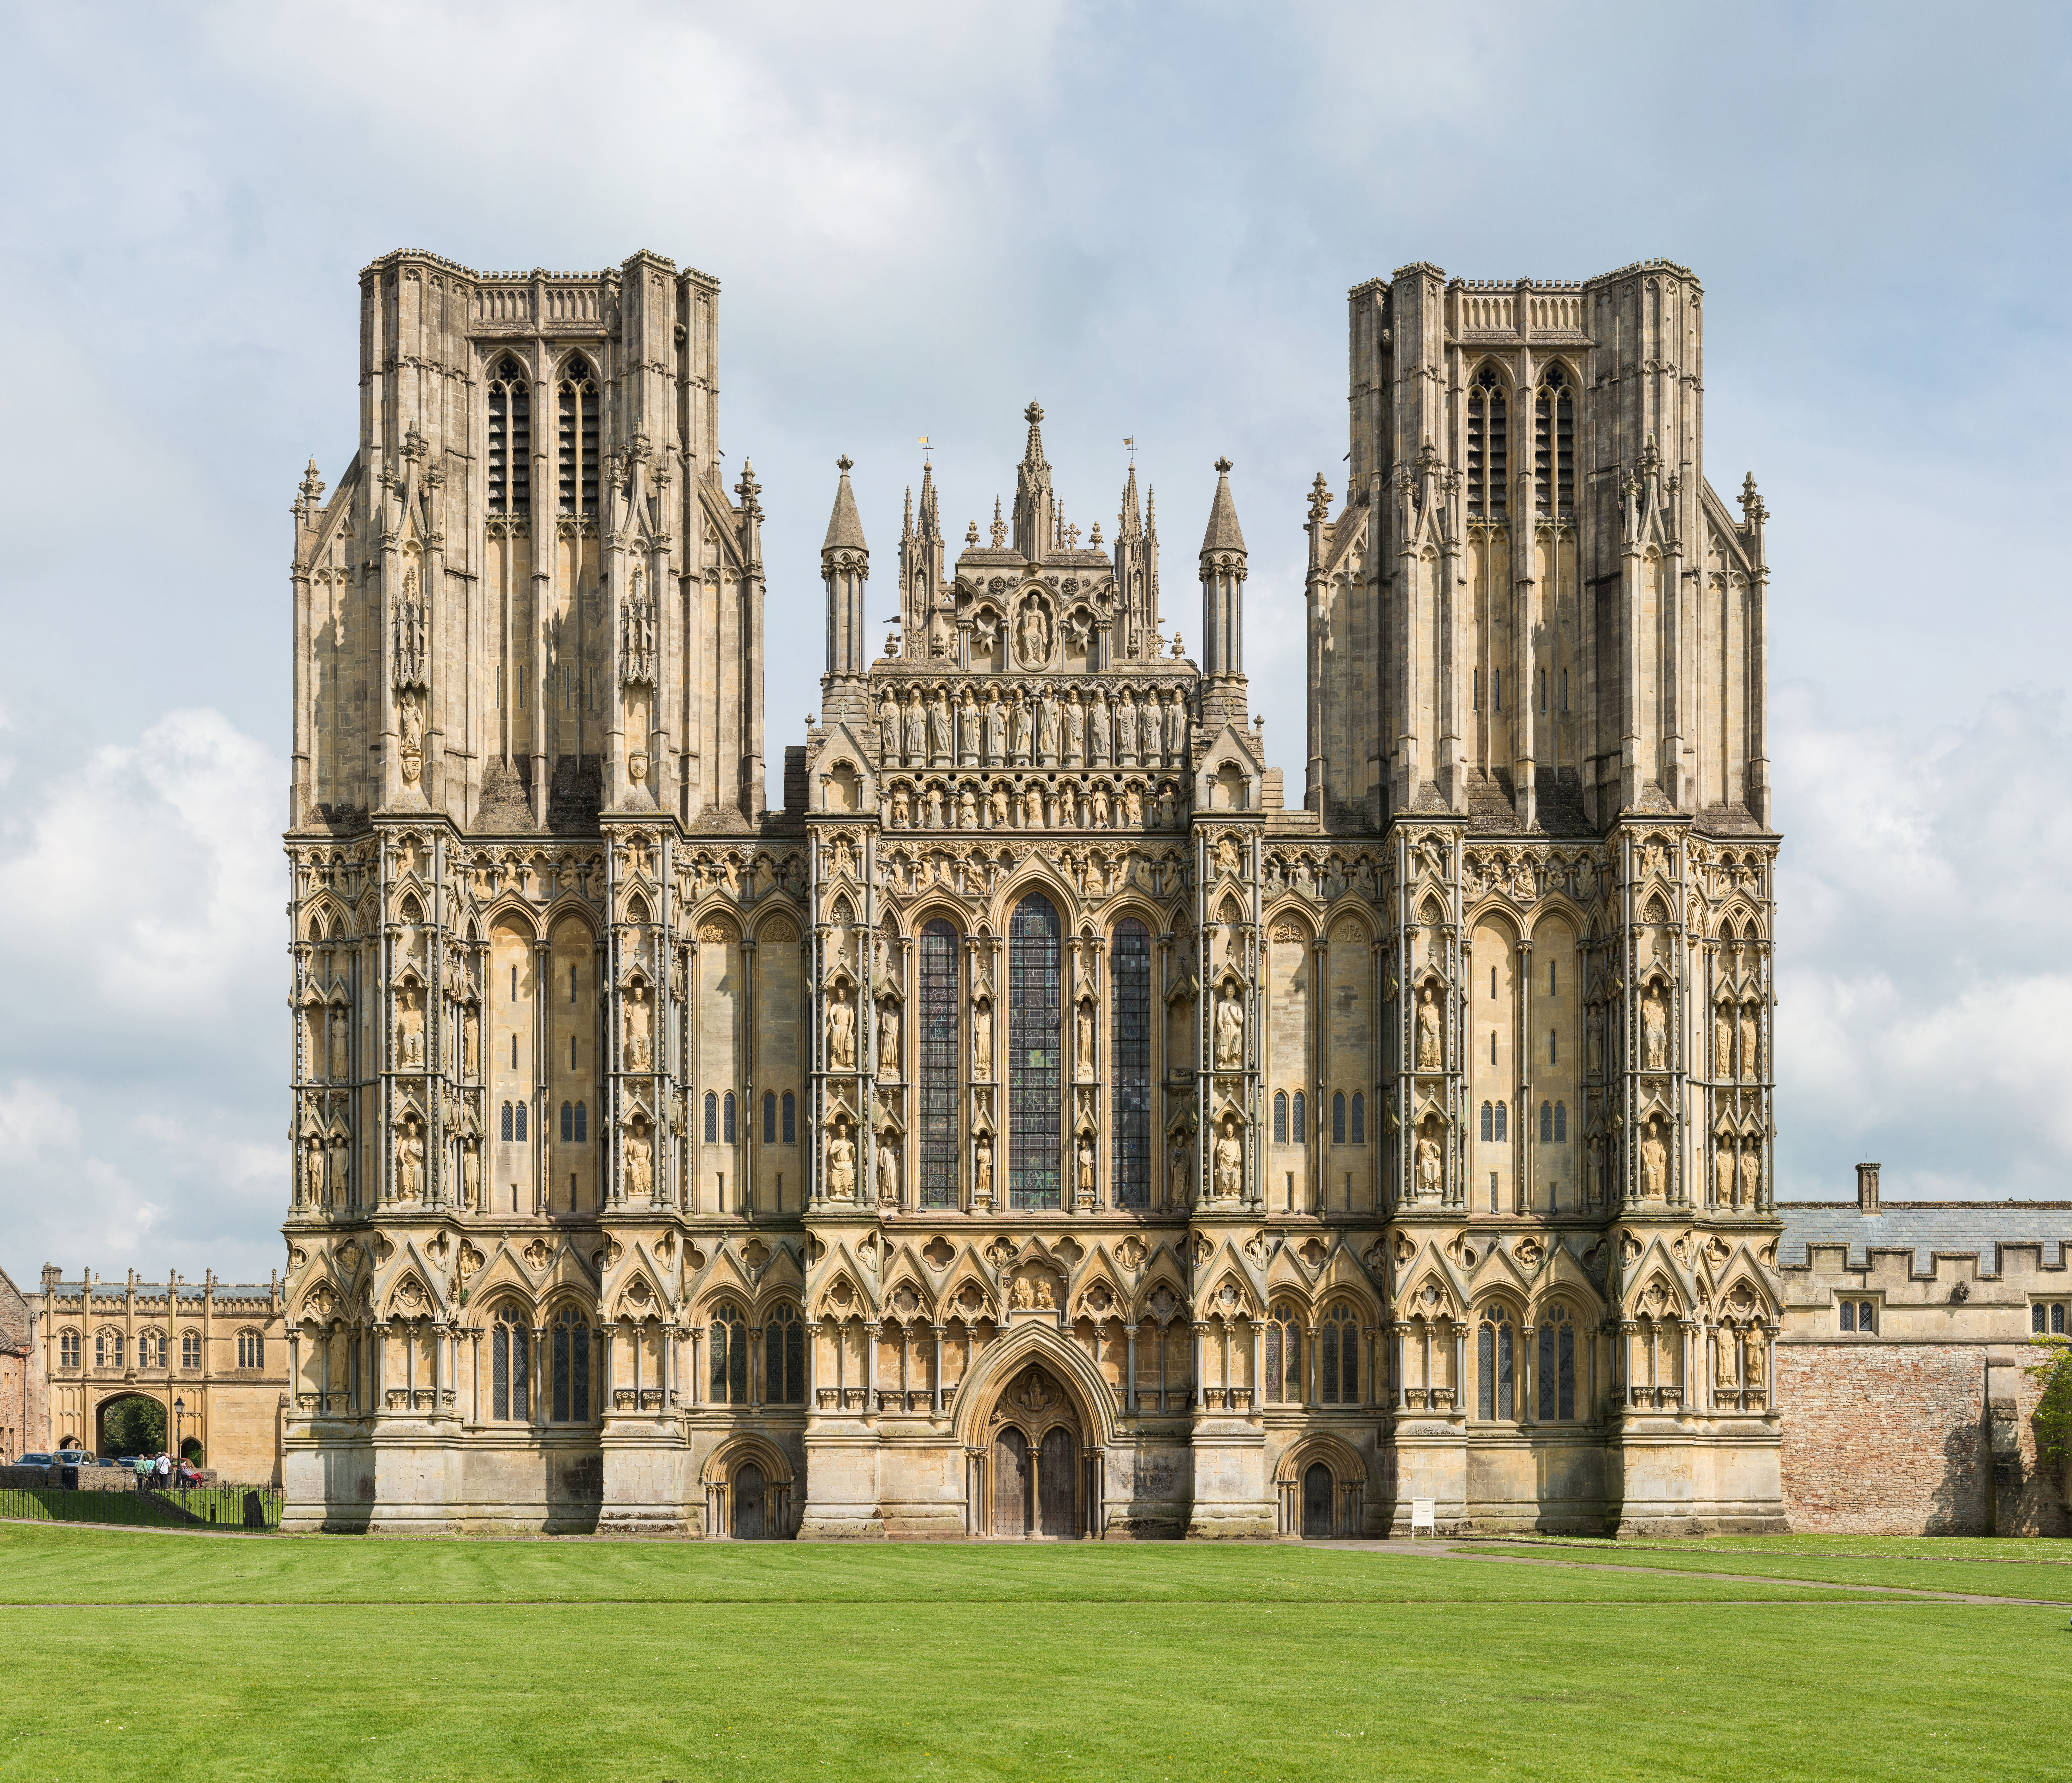 File:Wells Cathedral West Front Exterior, UK - Diliff.jpg